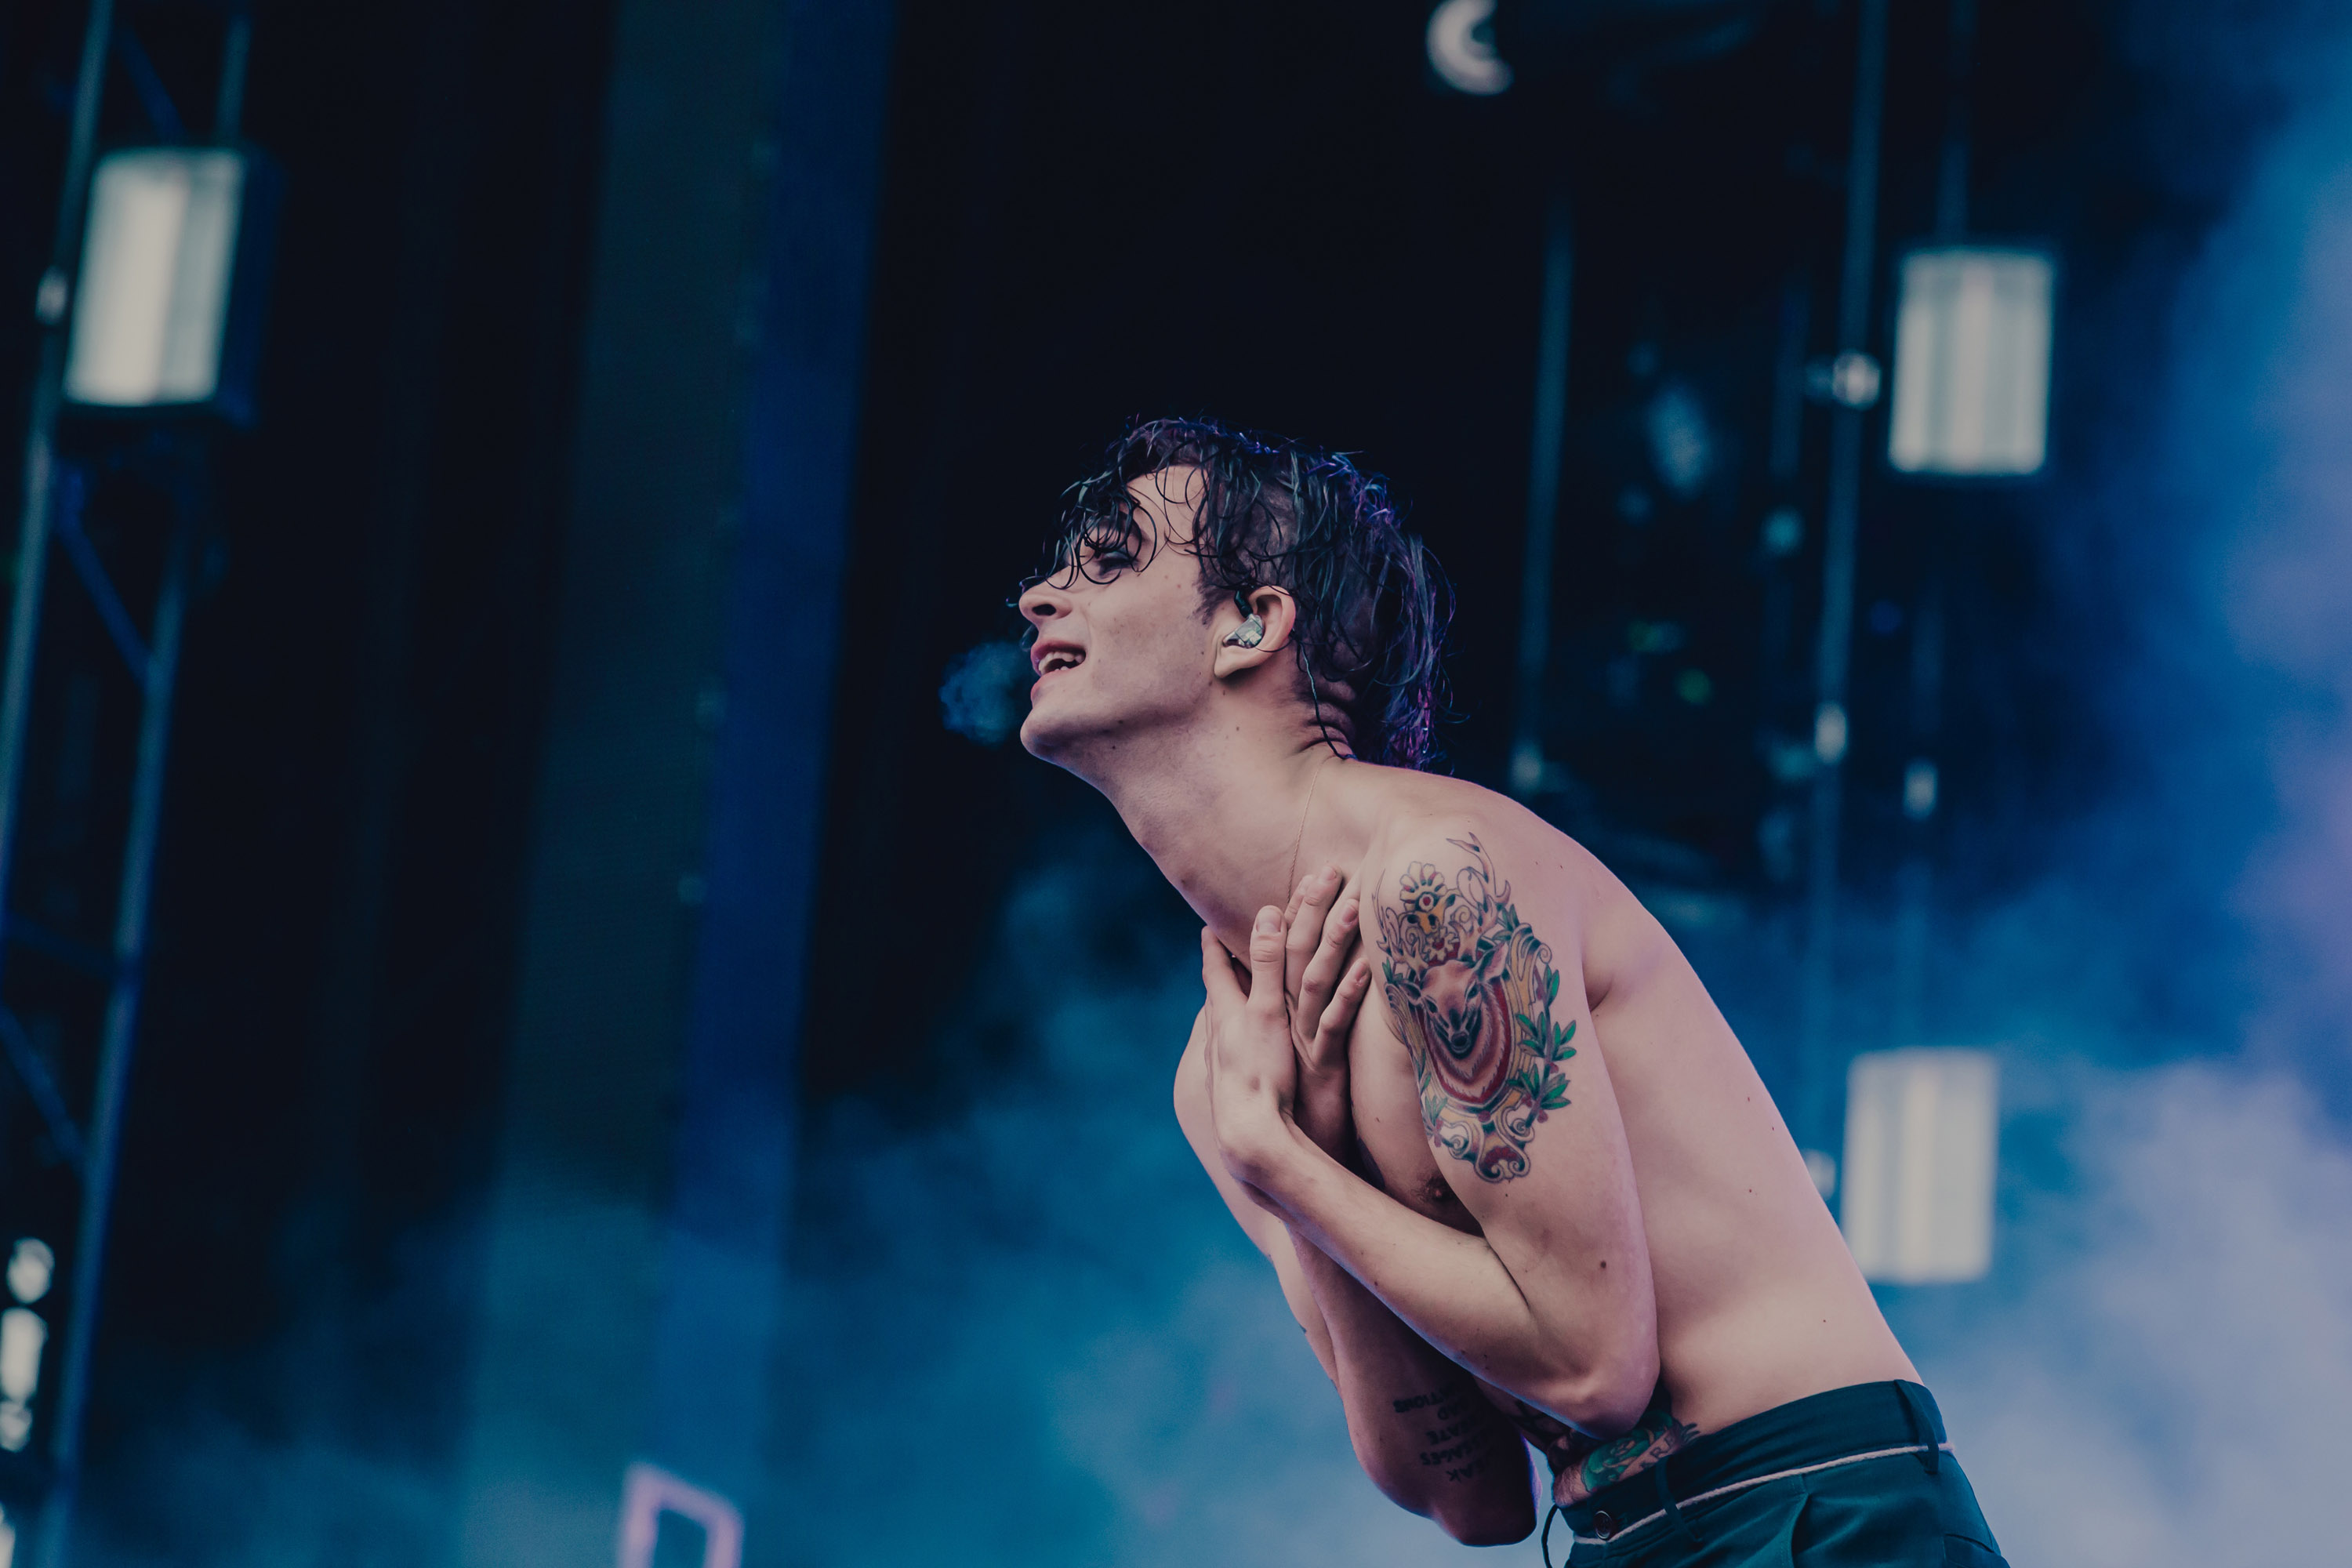 The 1975, Foo Fighters, Twenty One Pilots and Post Malone to headline Reading & Leeds 2019